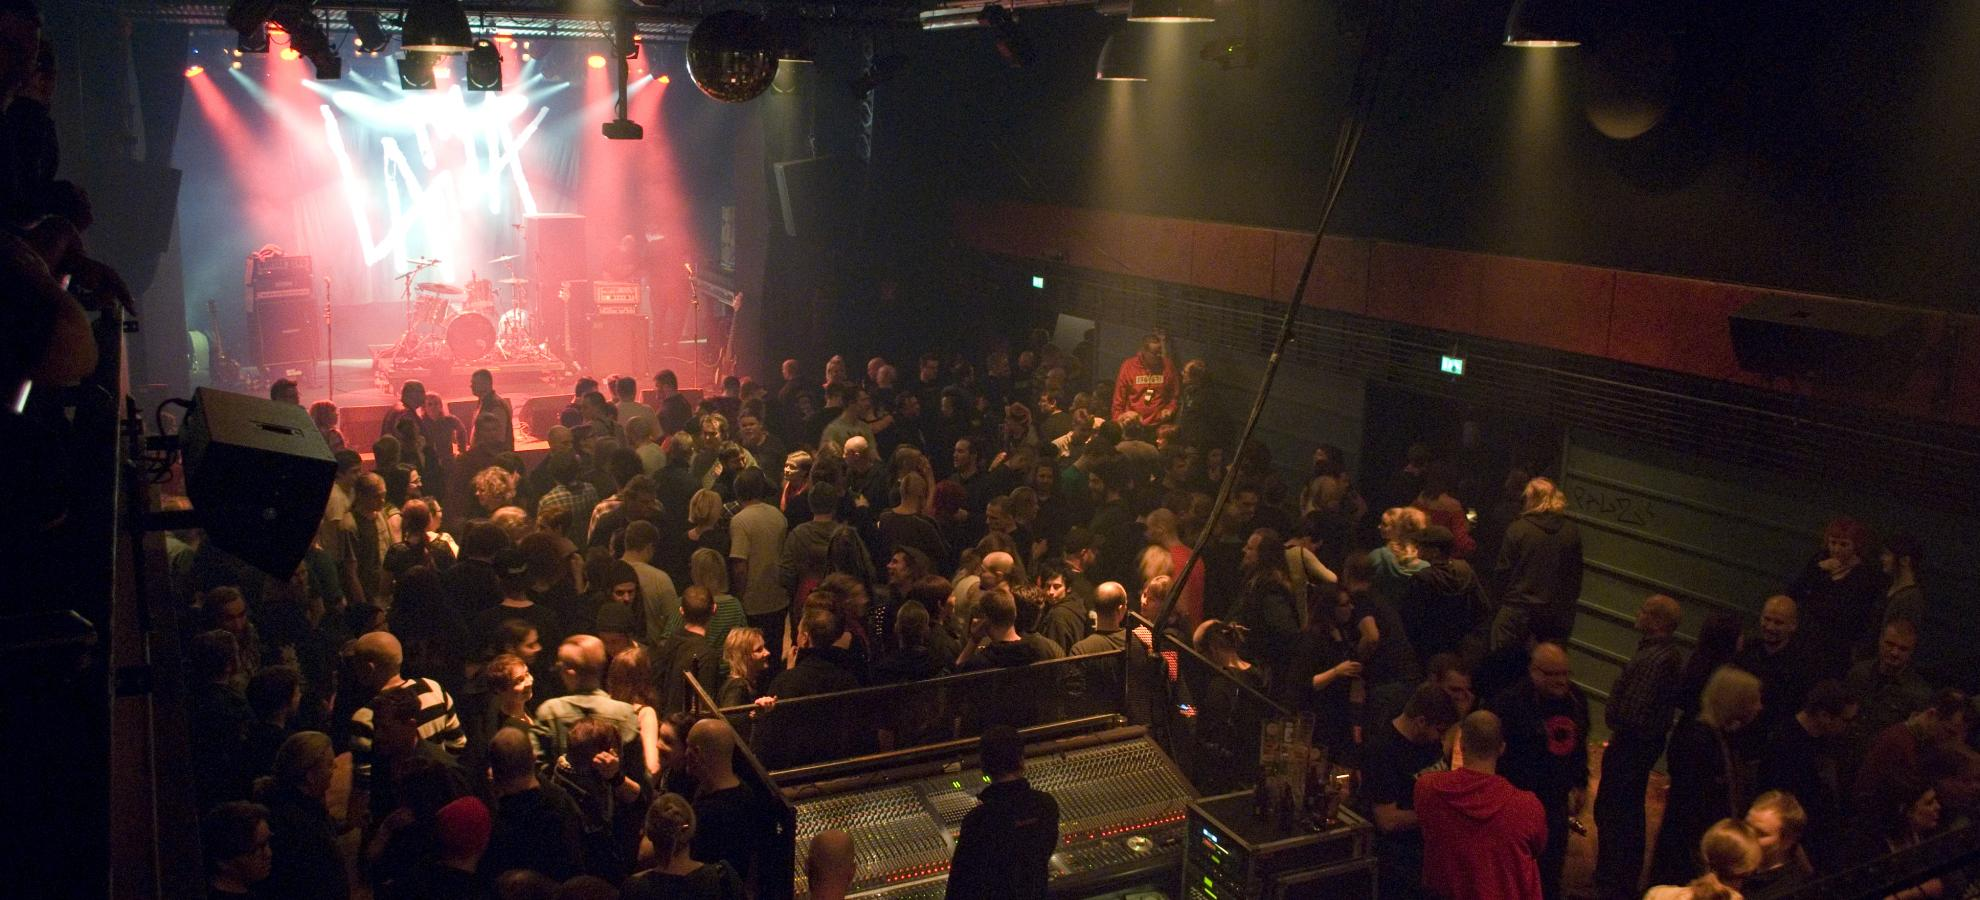 The Tavastia Club